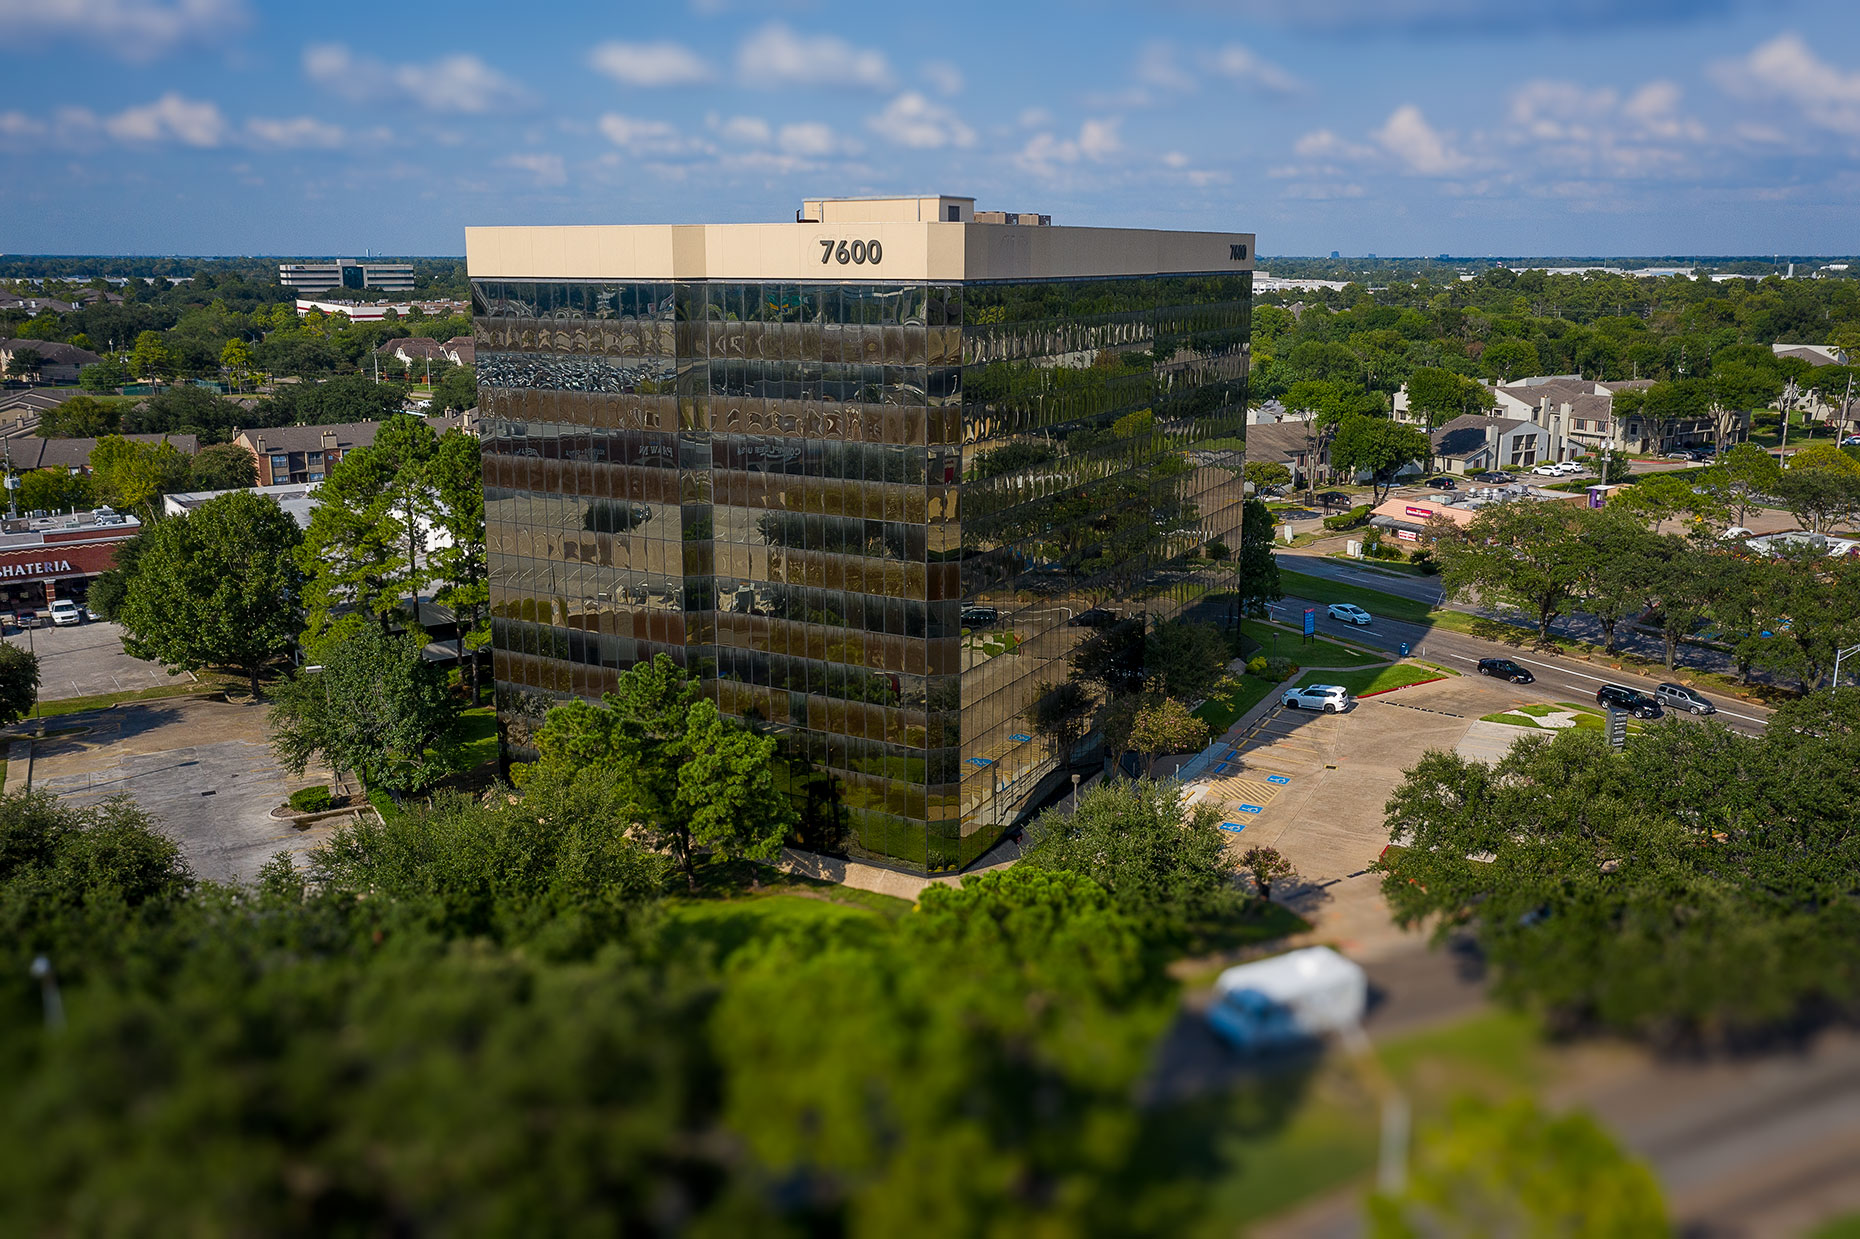 Aerial Photography of Office Building Complex at 7600 W Tidwell Rd Houston, TX, and immediate surroundings, streets and freeways